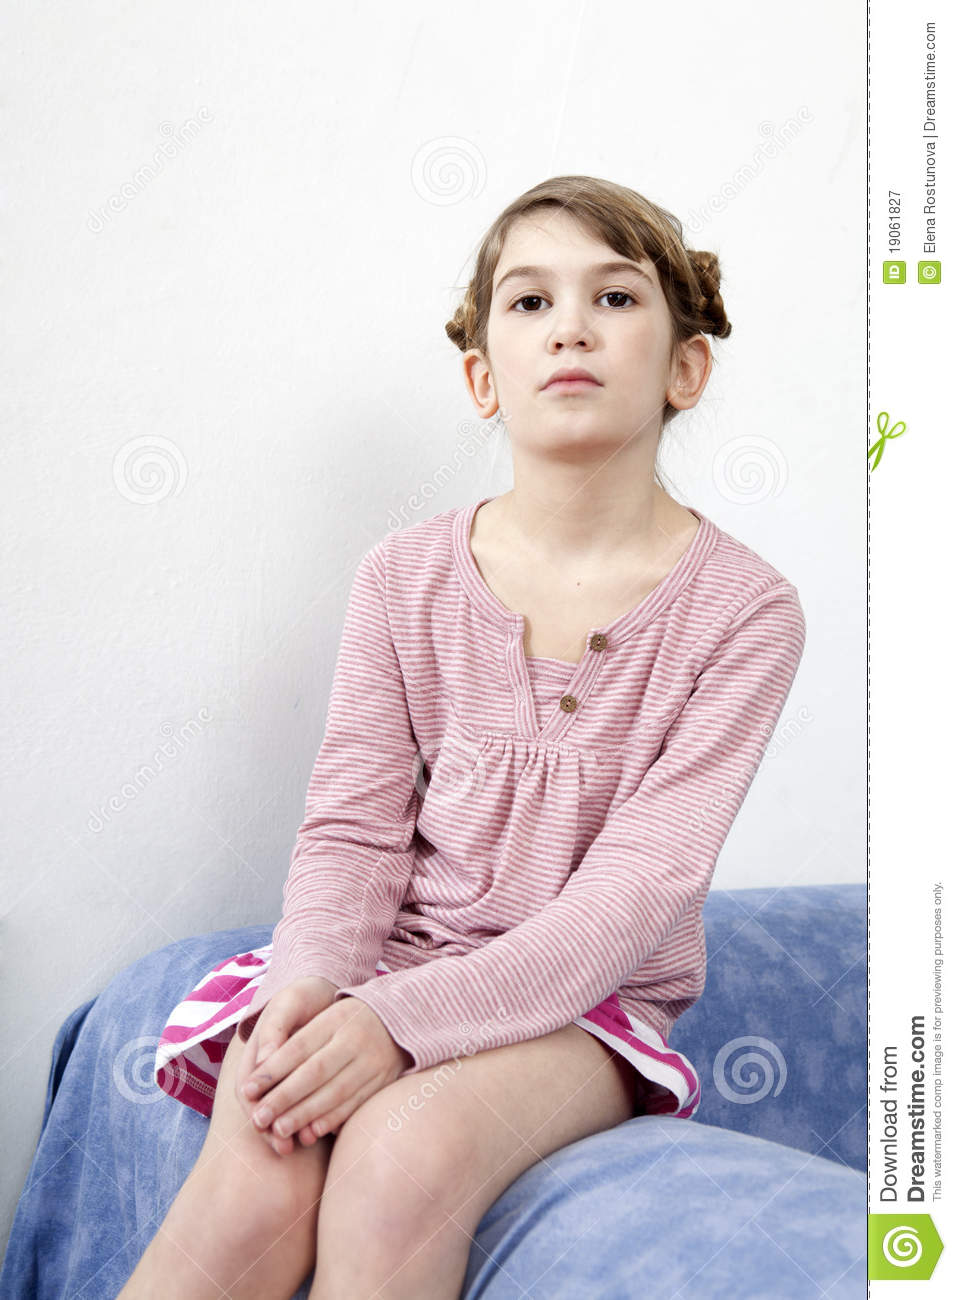 Calm Little Girl Sitting On Chair Royalty Free Stock